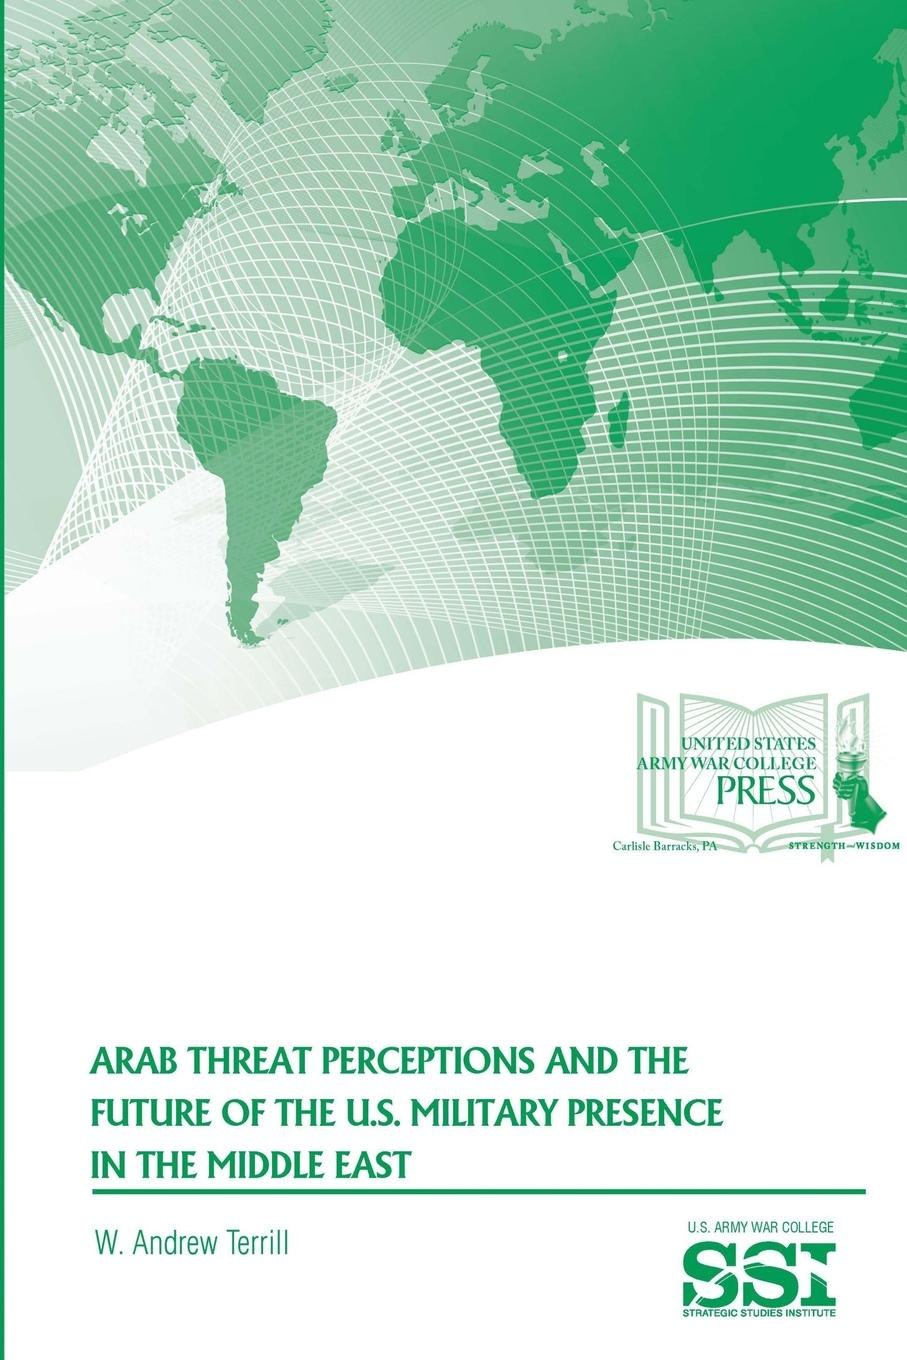 W. Andrew Terrill, Strategic Studies Institute, U.S. Army War College Arab Threat Perceptions and The Future of The U.S. Military Presence in The Middle East